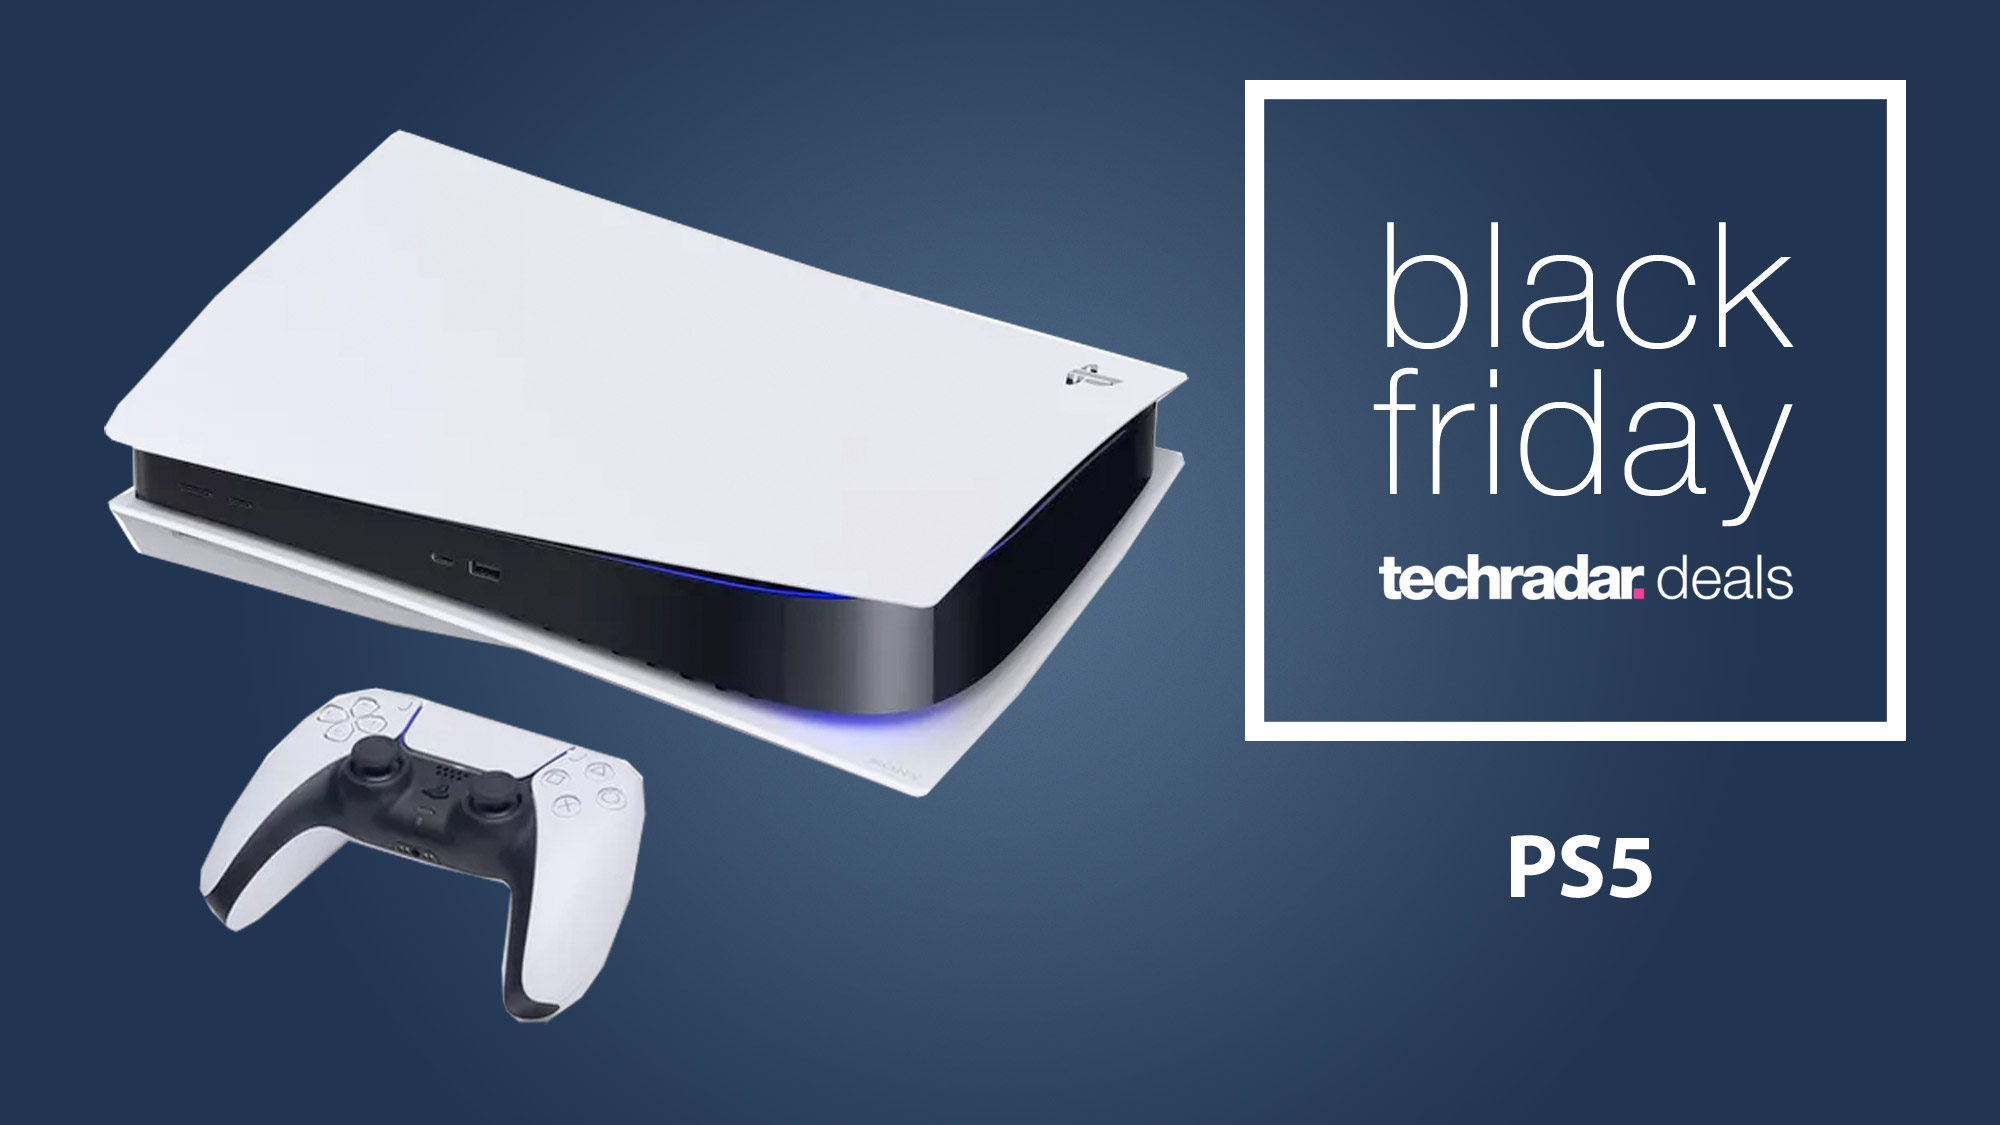 Black Friday Ps5 Deals Save On Ps5 Games Ps Plus Subscriptions And Ps5 Accessories Techradar